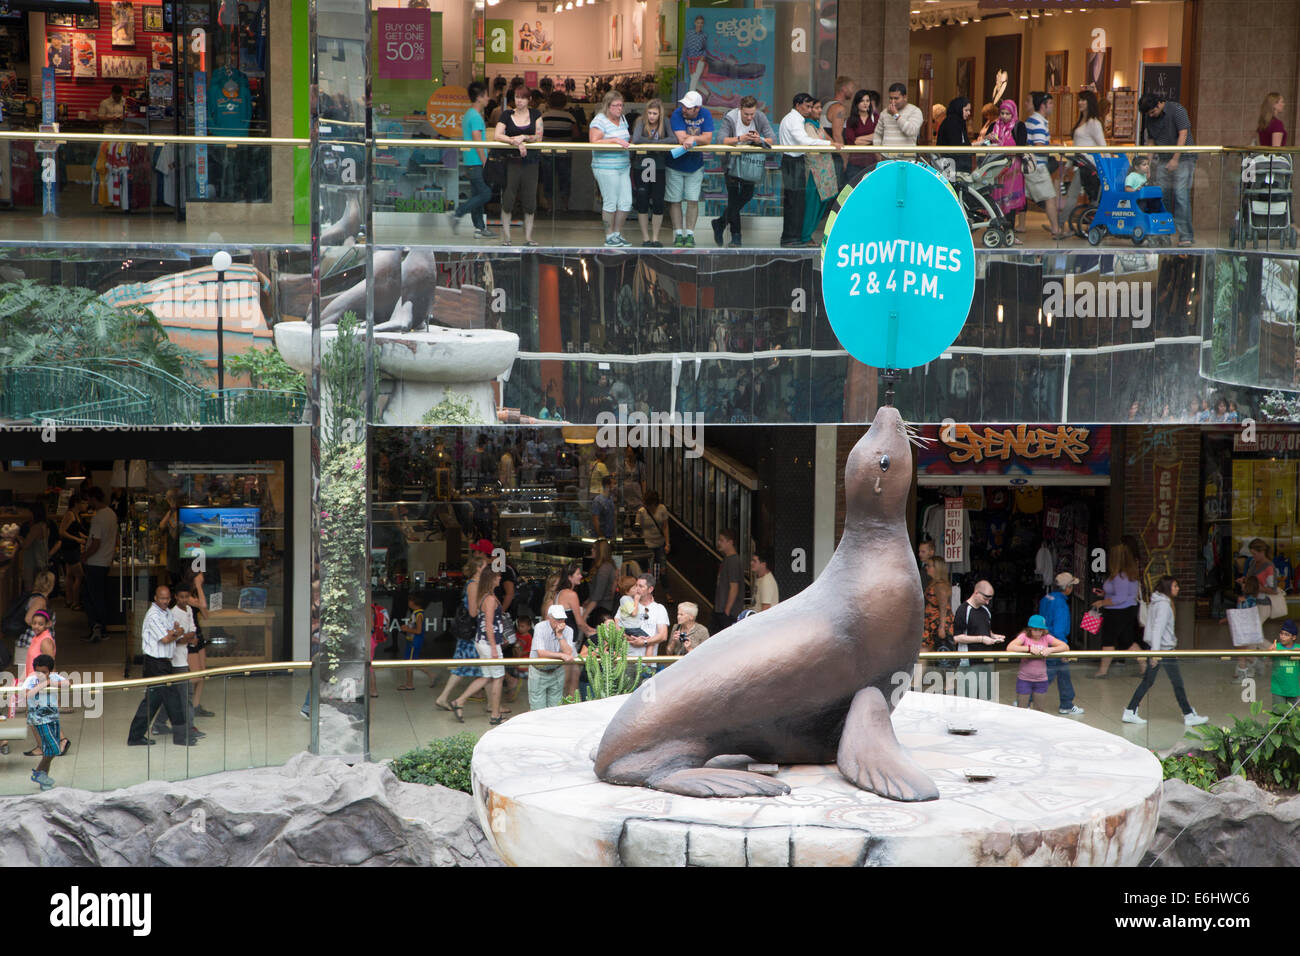 West Edmonton mall with advertisement for marine life shows - Stock Image